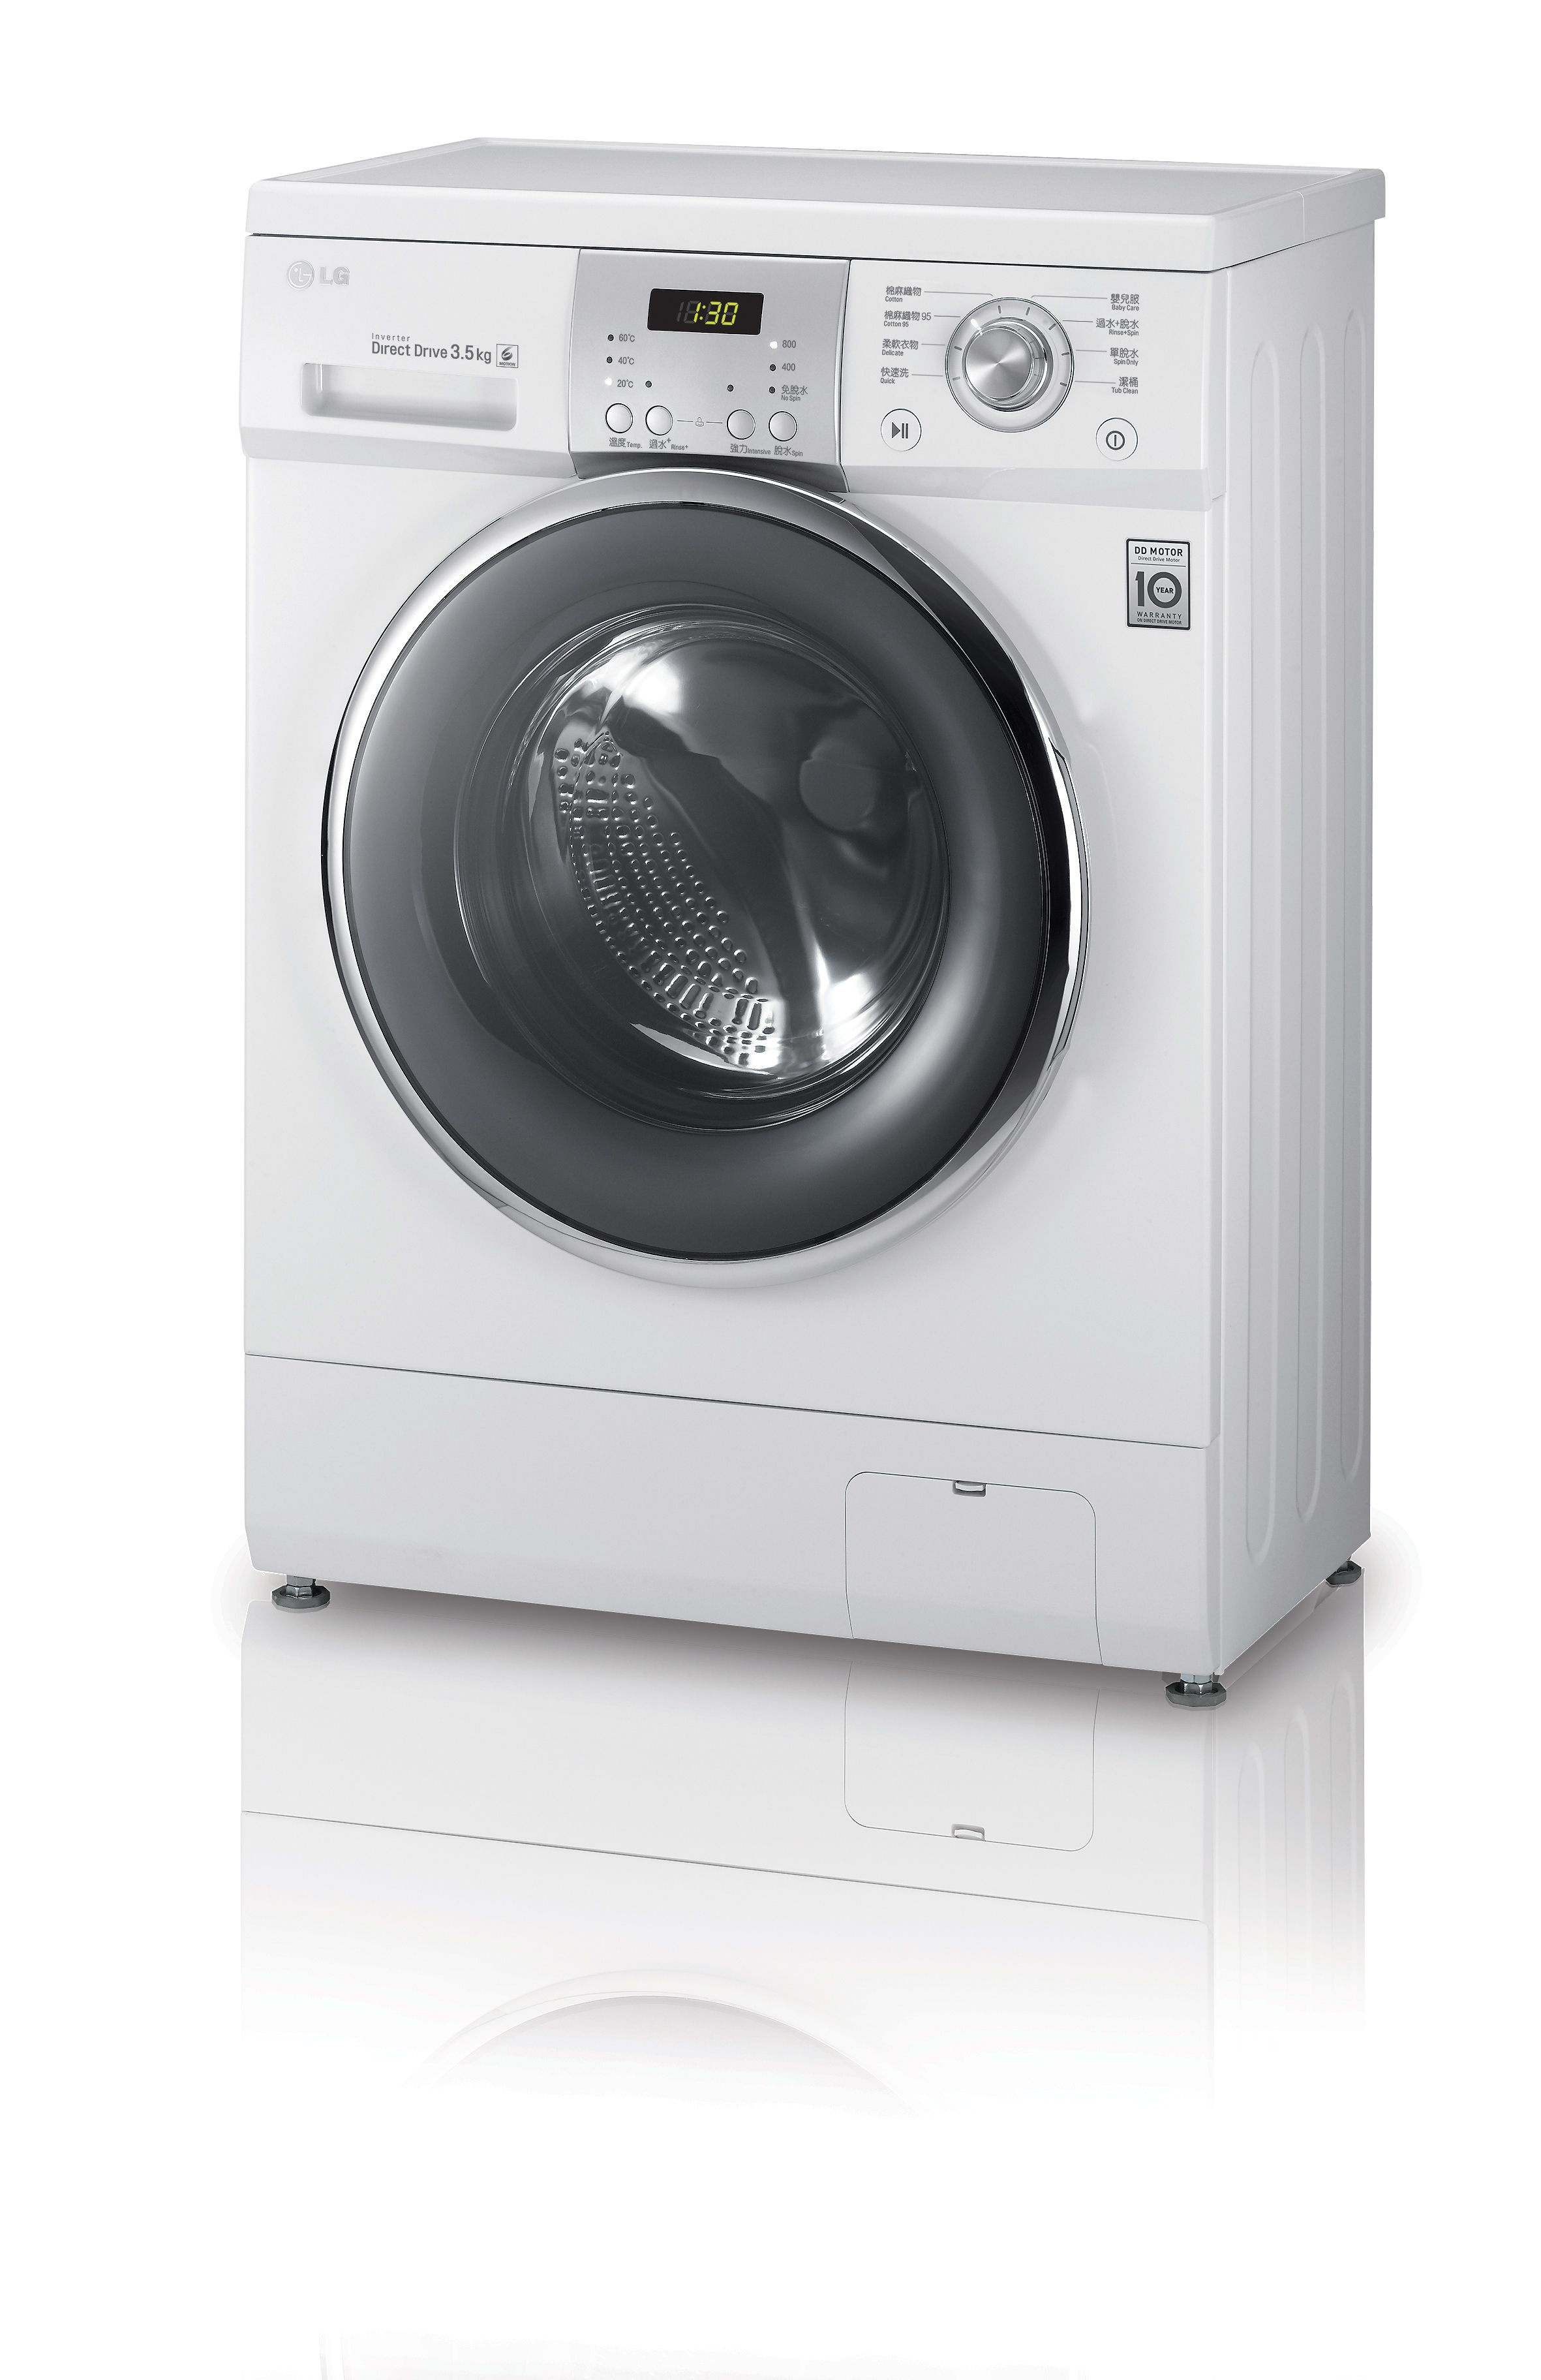 Lg Slim Washer With Only 360 Mm Depth